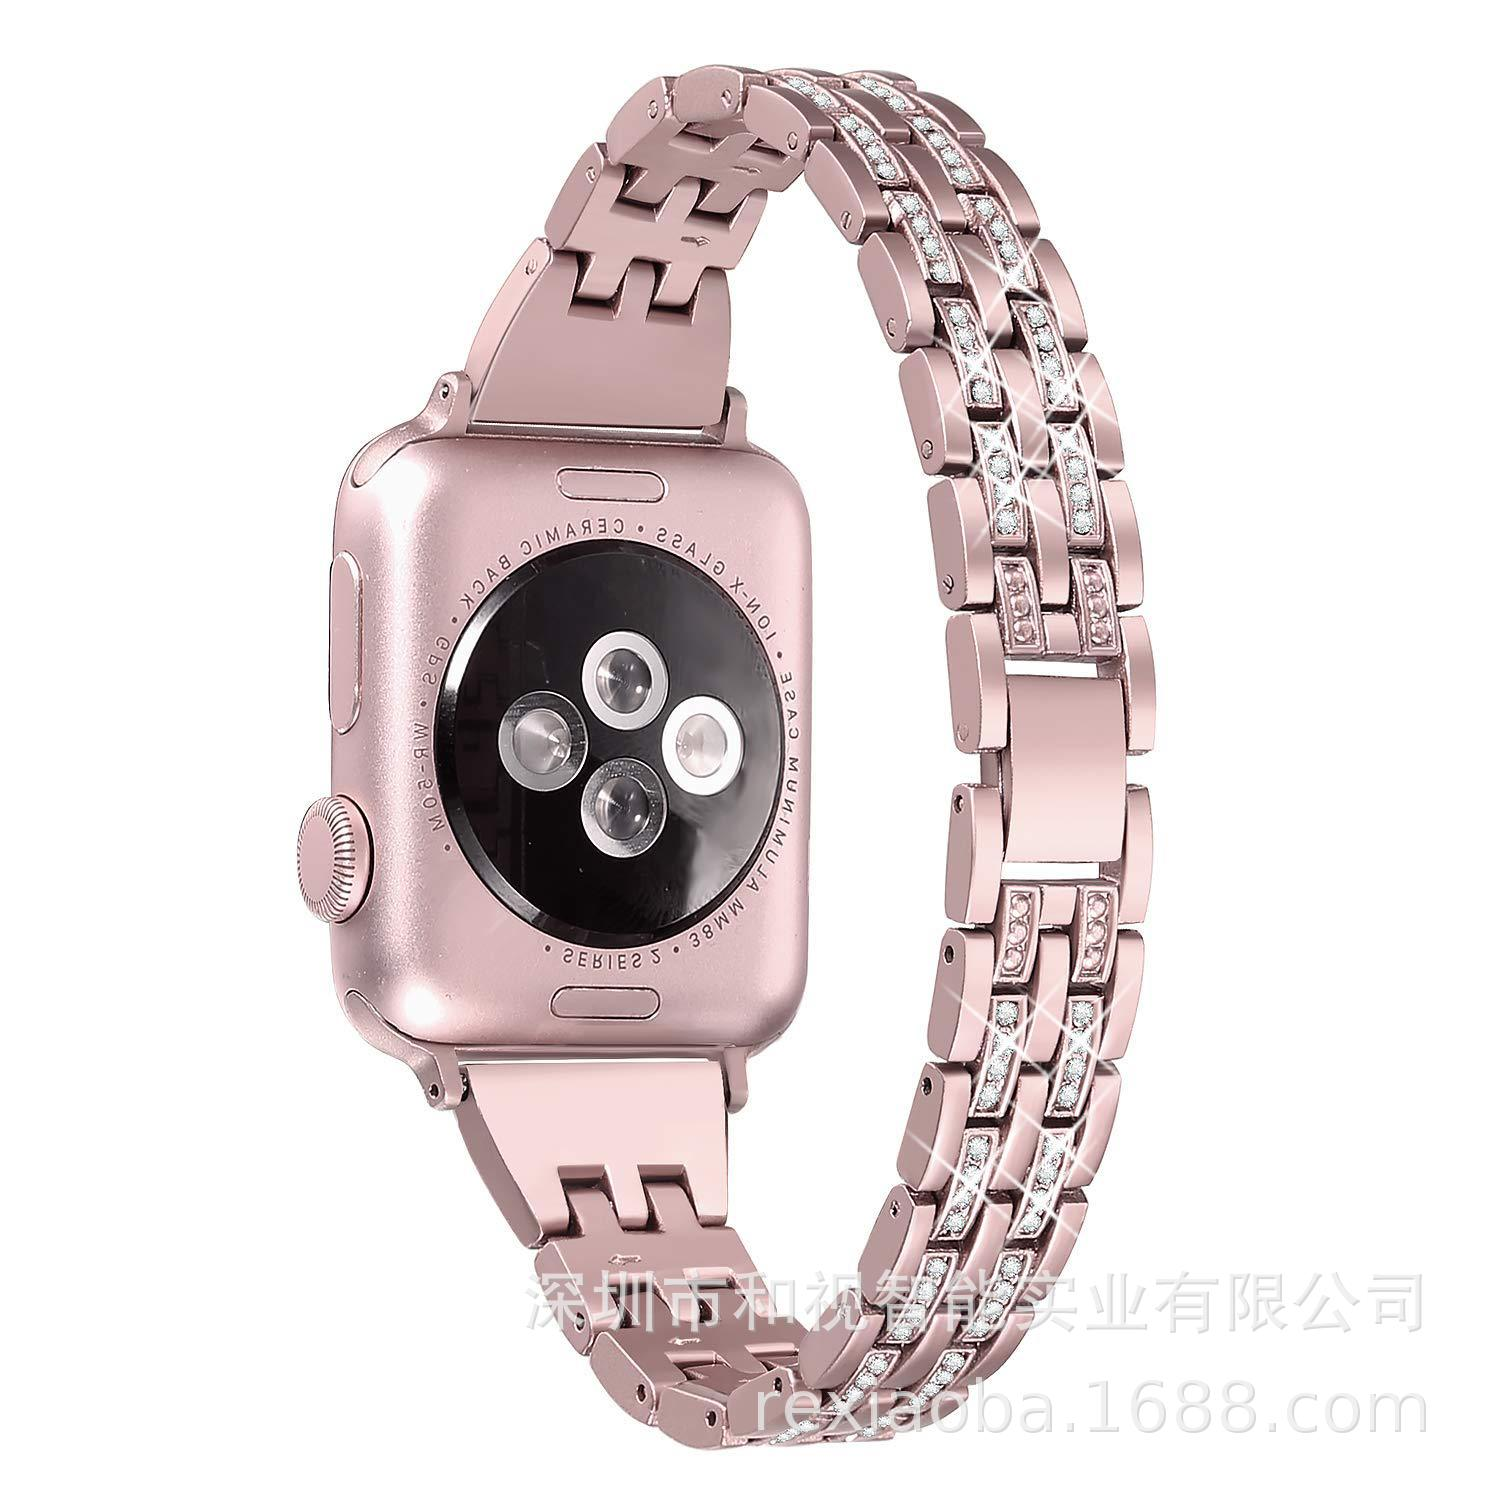 Suitable For Apple Watch Strap Stainless Steel Metal Diamond Set Hollow Out Watch Strap Applicable APPLE Watch